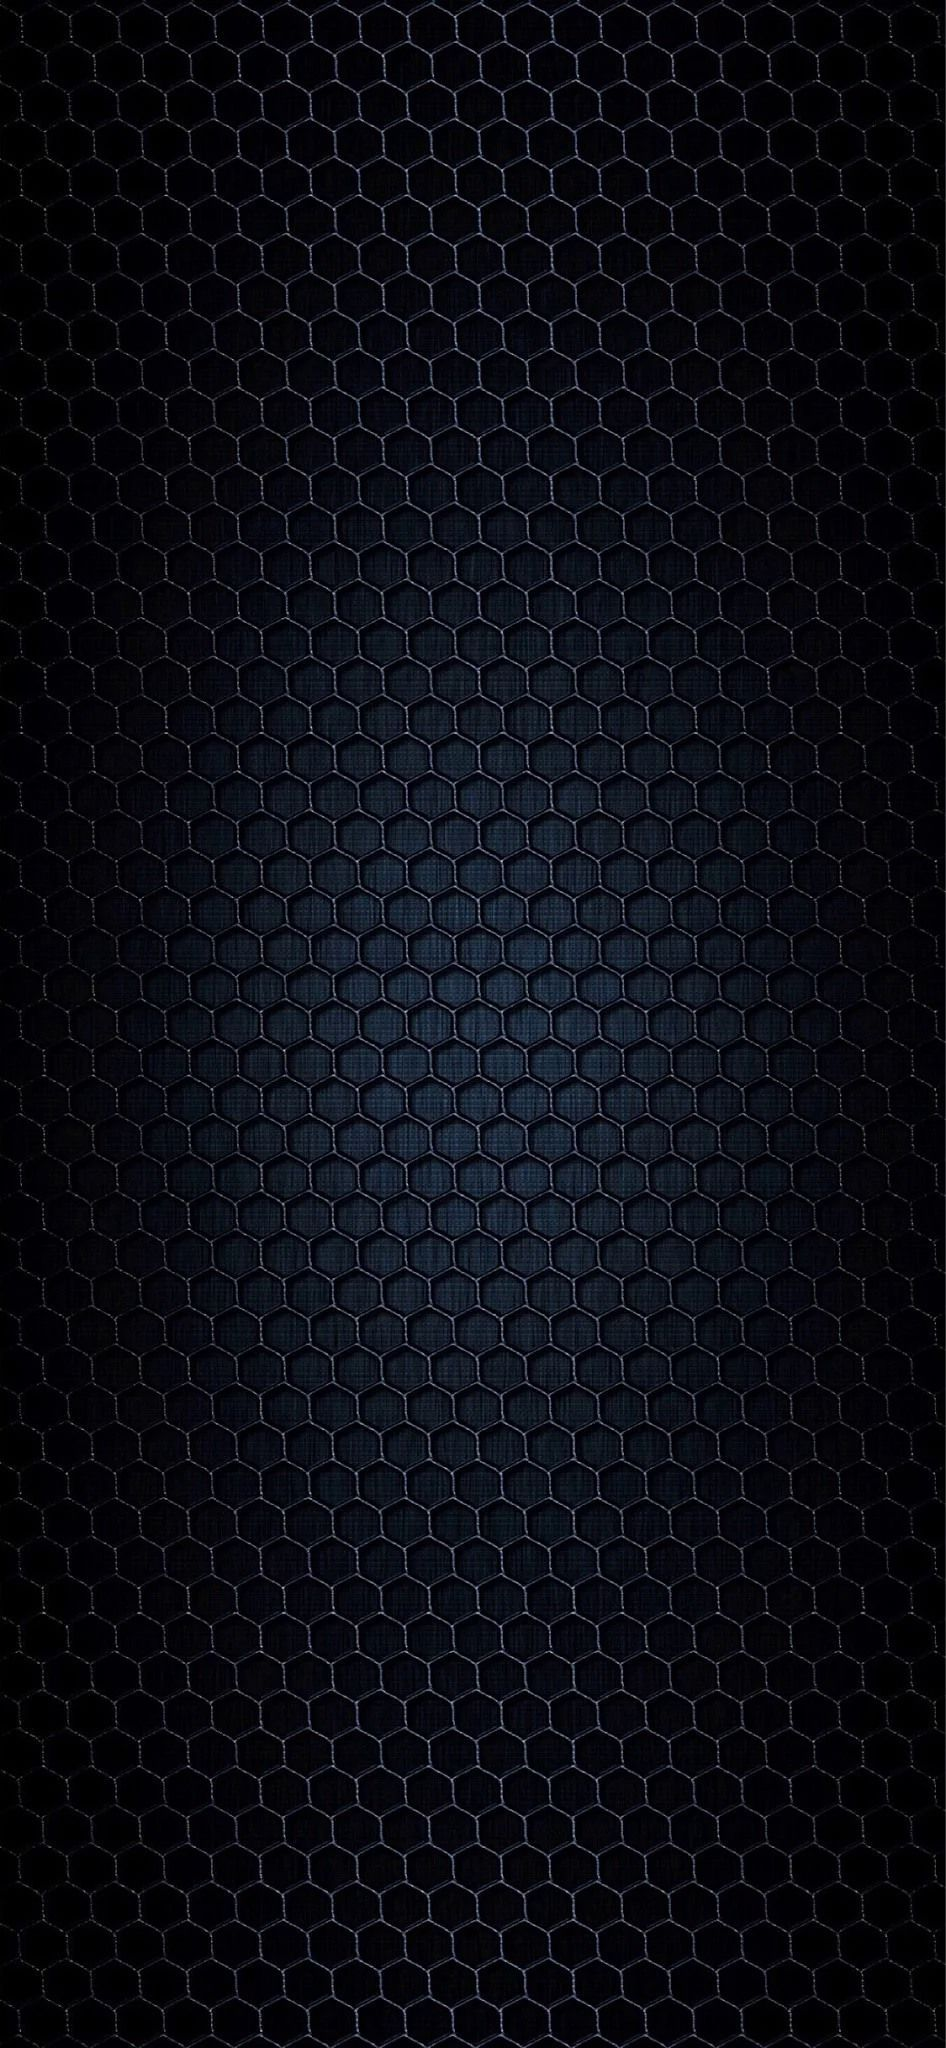 Screen Saver On Your Phone Technology Wallpaper Iphone Wallpaper Black Phone Wallpaper